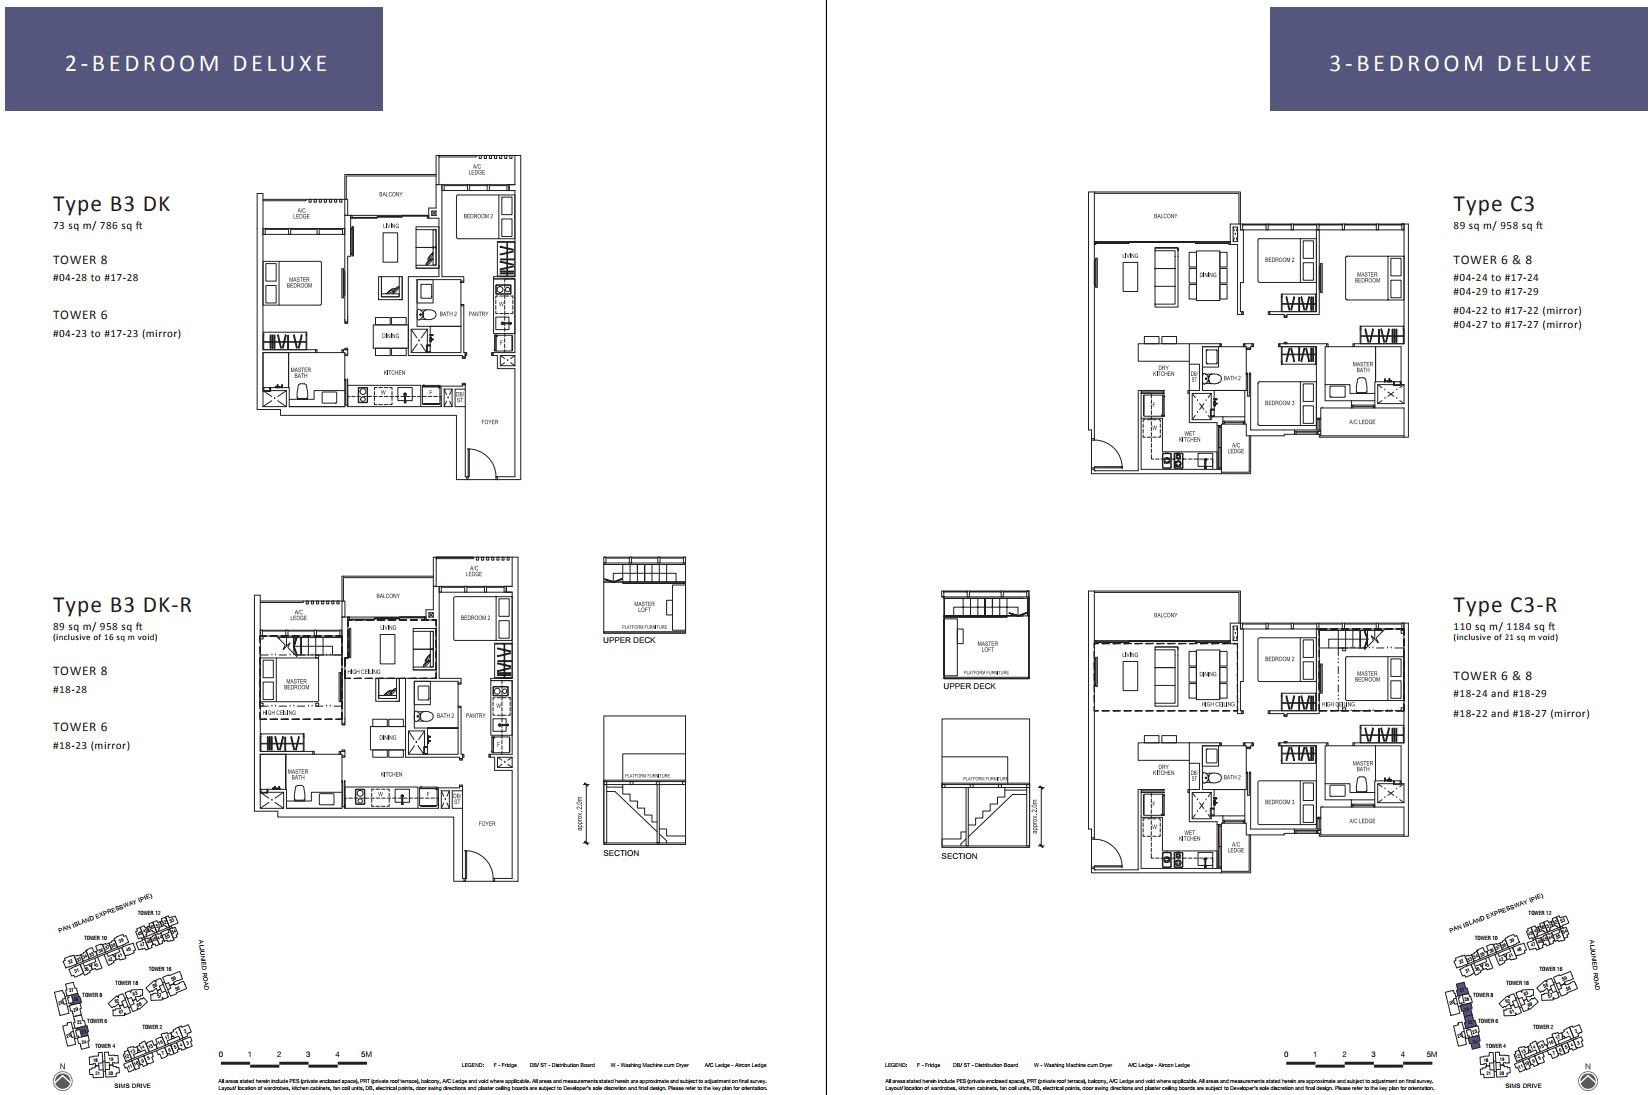 Sims Urban Oasis FloorPlan - 2 & 3 Bedroom Deluxe